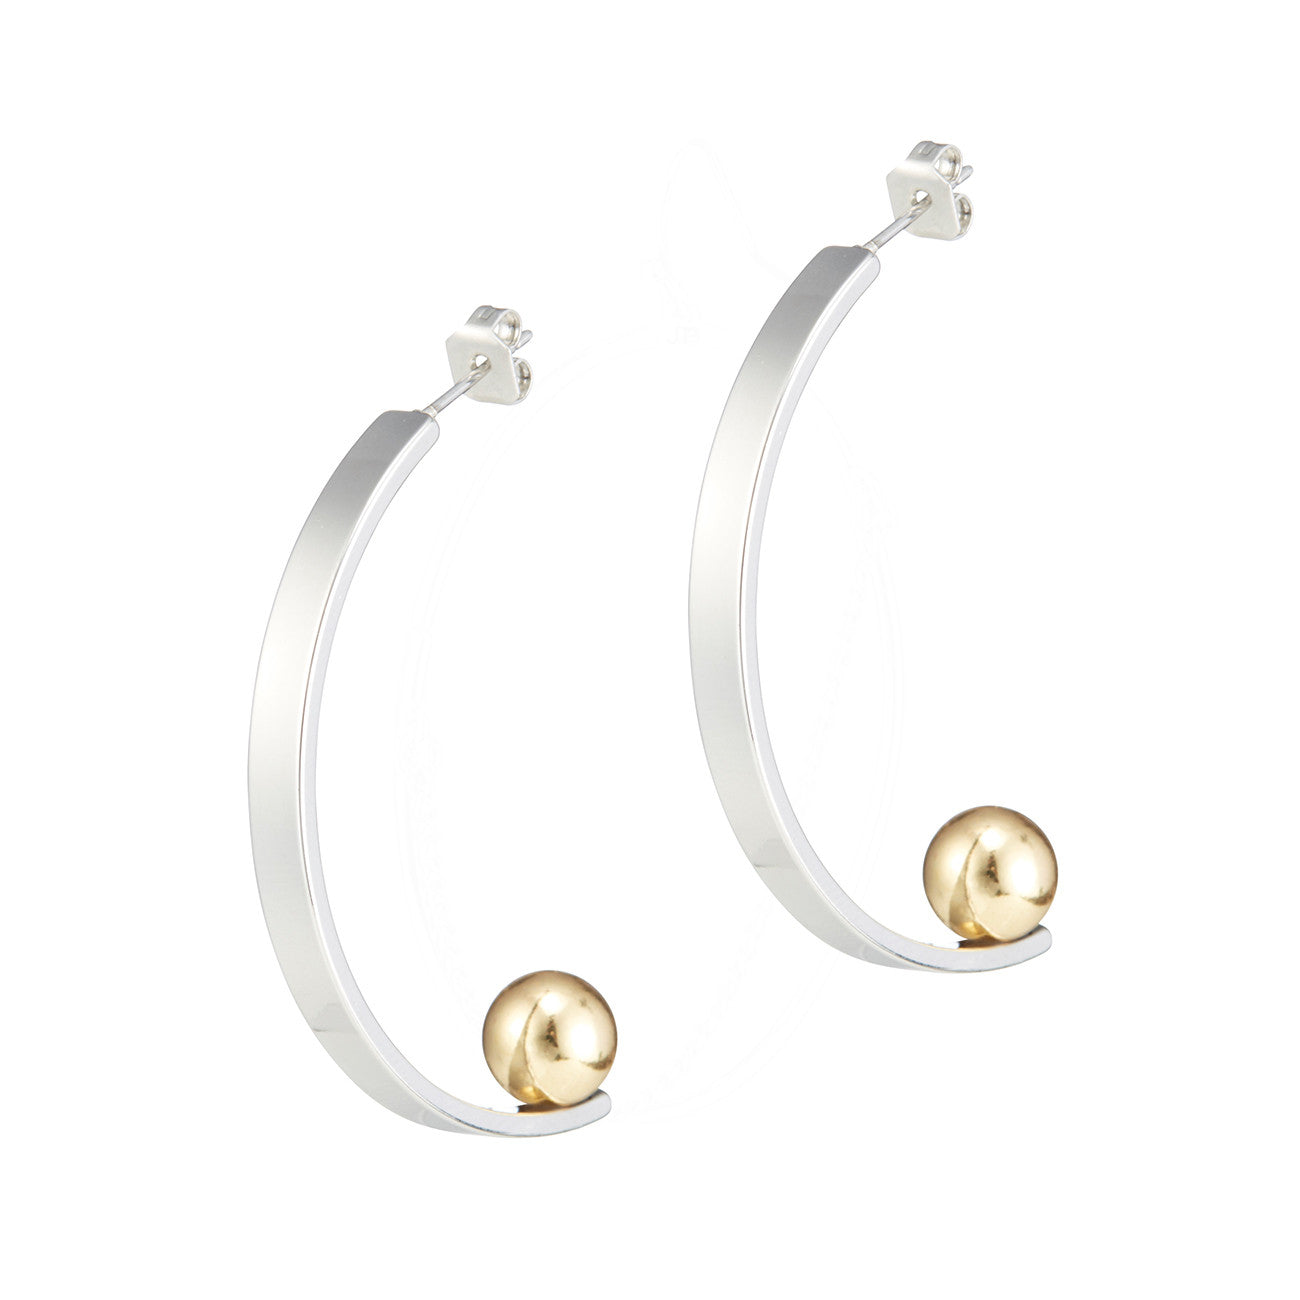 Vela Earrings by Jenny Bird in Rhodium